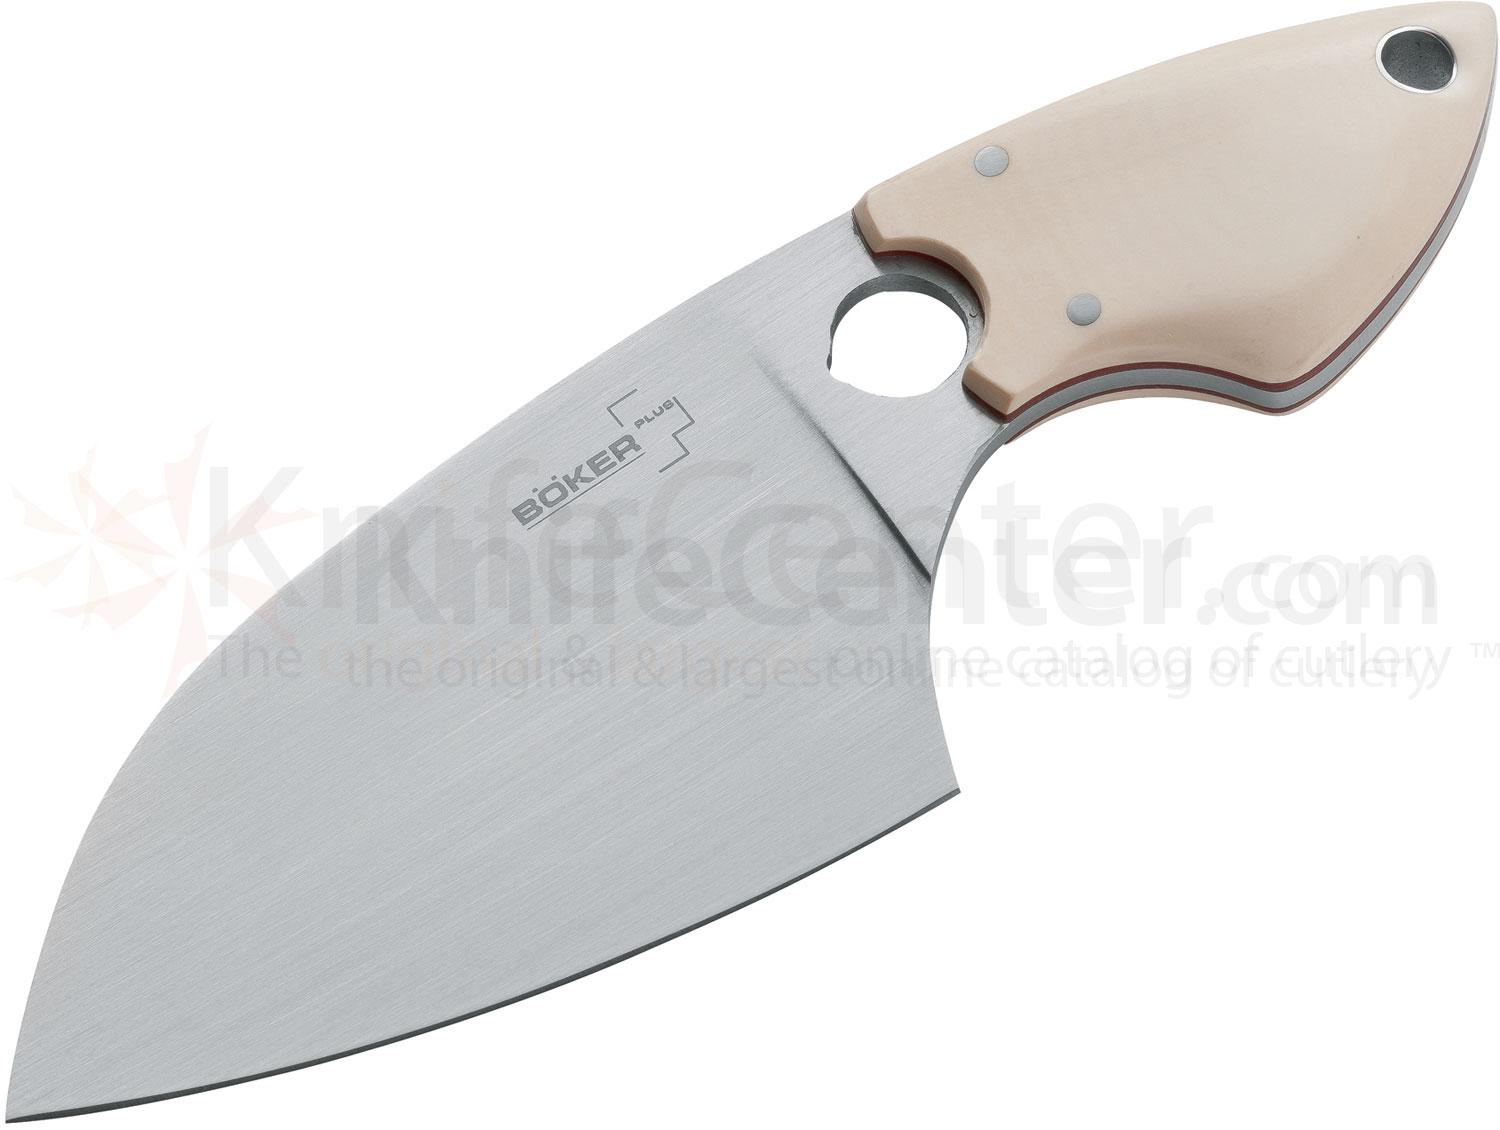 Boker Plus Sanyougo Utility Knife 3-3/8 inch Blade, White Micarta Handles, Leather Sheath